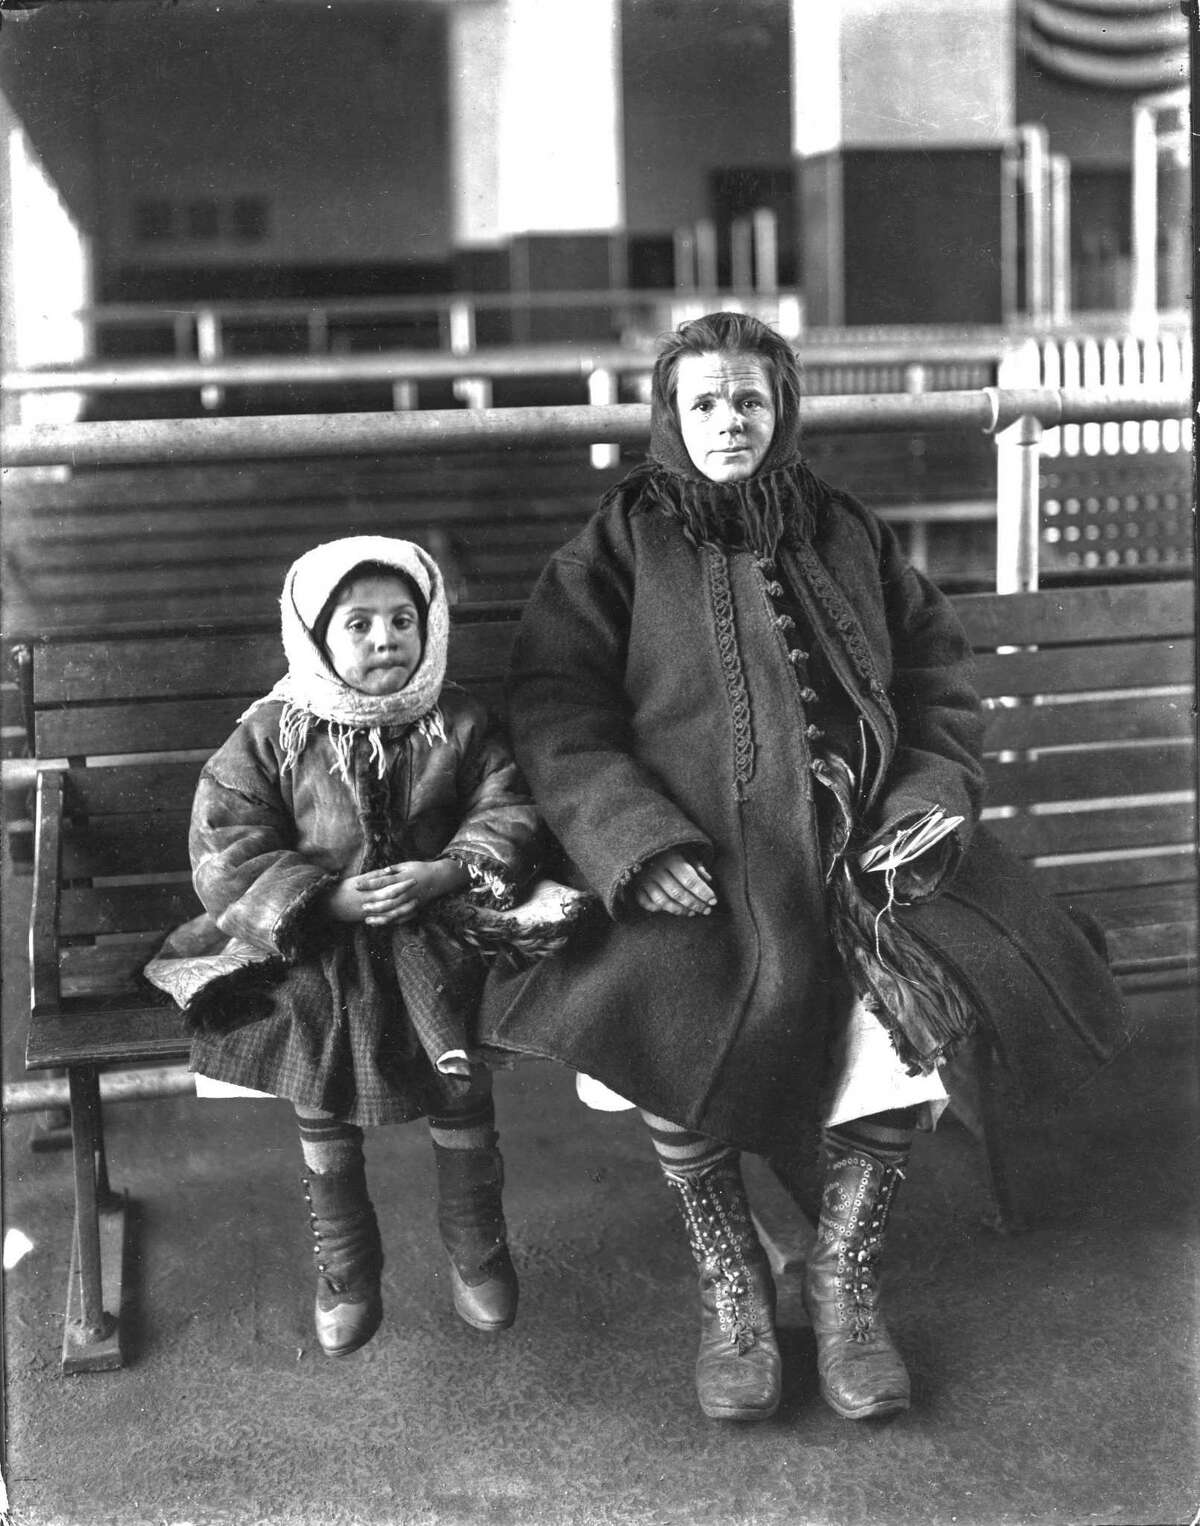 This undated photo provided by Brown Brothers shows a mother and child at Ellis Island in New York. A Pennsylvania-based stock photography company founded in Manhattan 110 years ago is looking to sell its collection of more than 1 million photographs and negatives, including tens of thousands of black-and-white images of New York City before World War II.